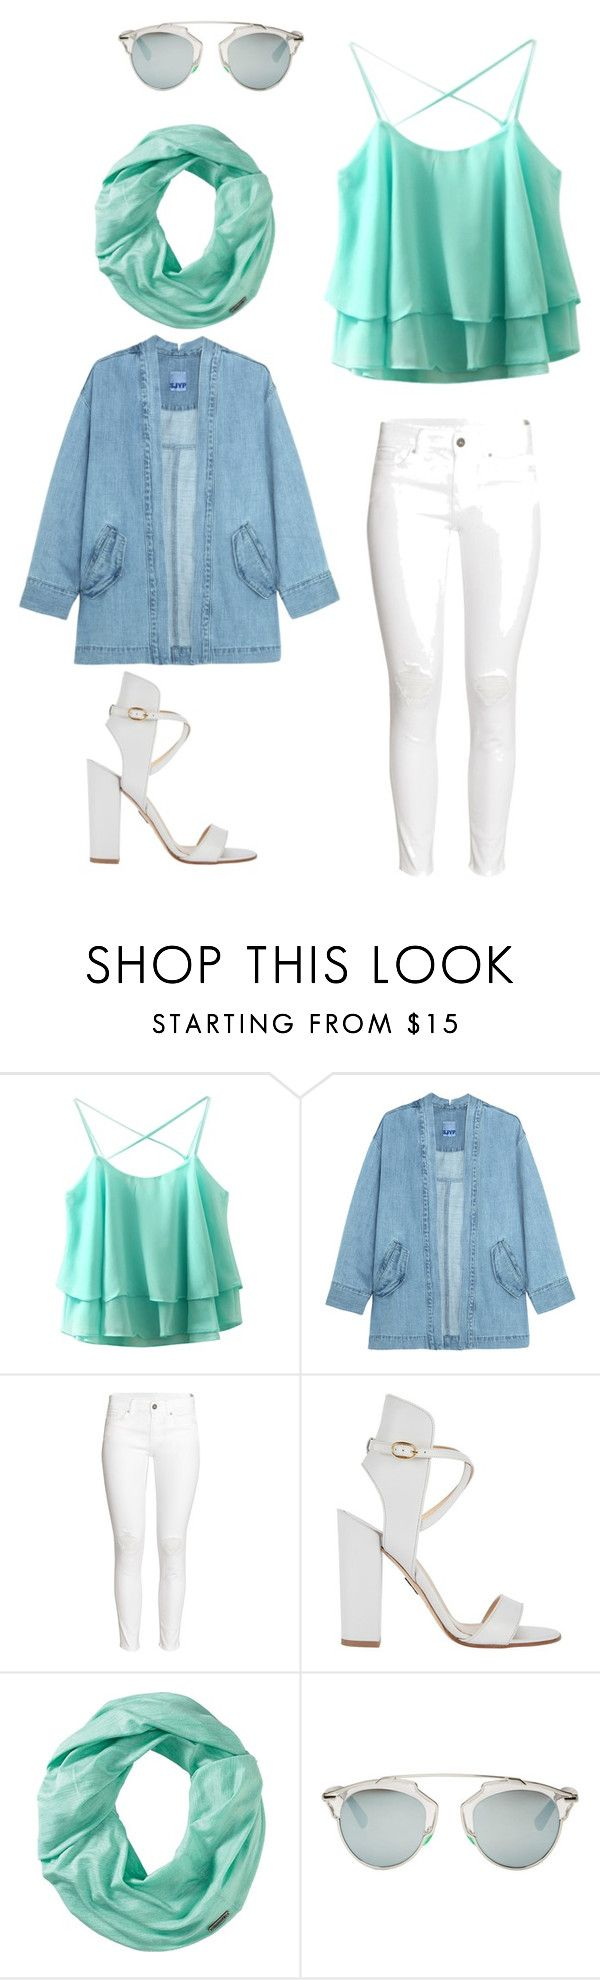 Mint in the city by citrarizkiamalia on Polyvore featuring beauty, Smartwool, Christian Dior, Steve J & Yoni P, H&M and Paul Andrew